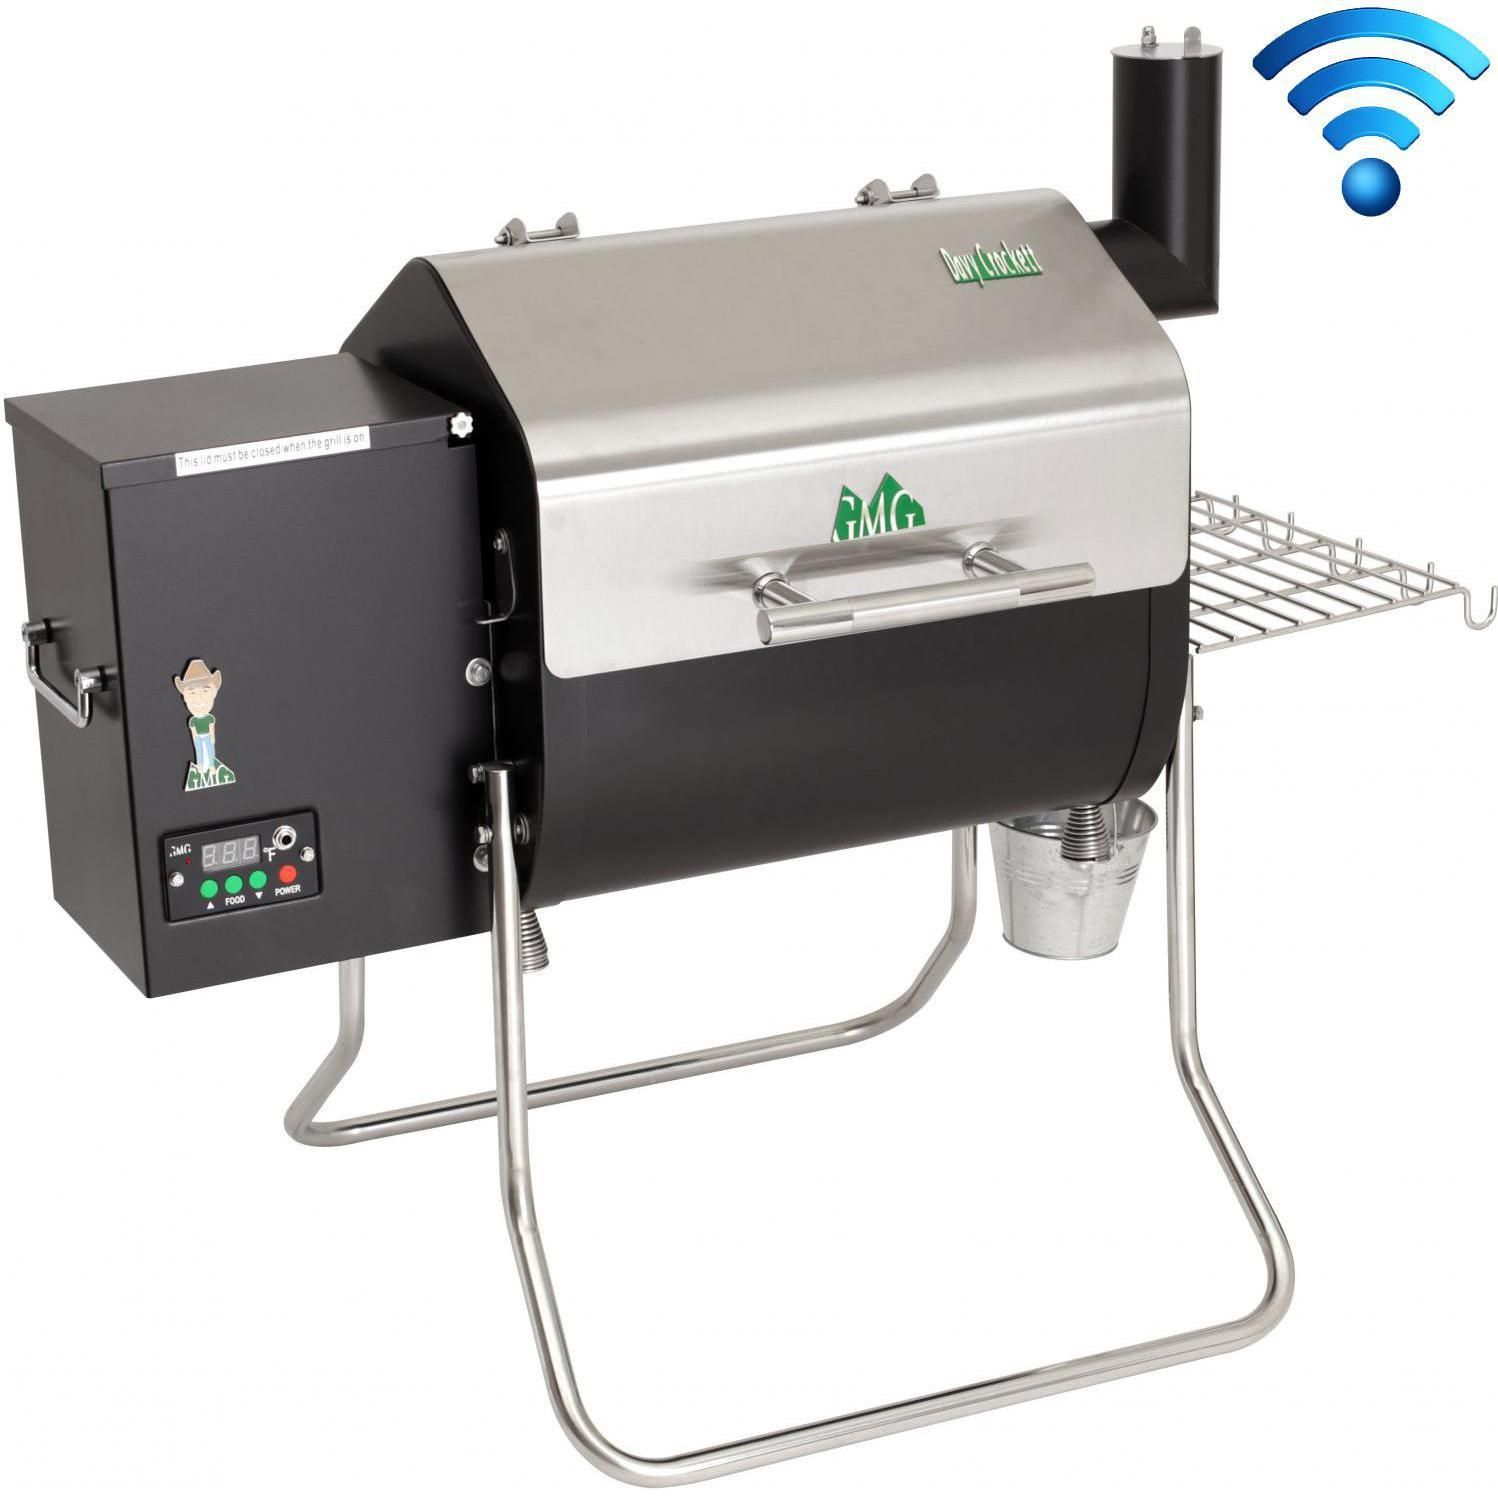 Green Mountain Grills Davy Crockett Wifi Controlled Portable Pellet Grill With Bonus Package Dc Grill Package Bbqguys Portable Pellet Grill Wood Pellet Grills Green Mountain Grills